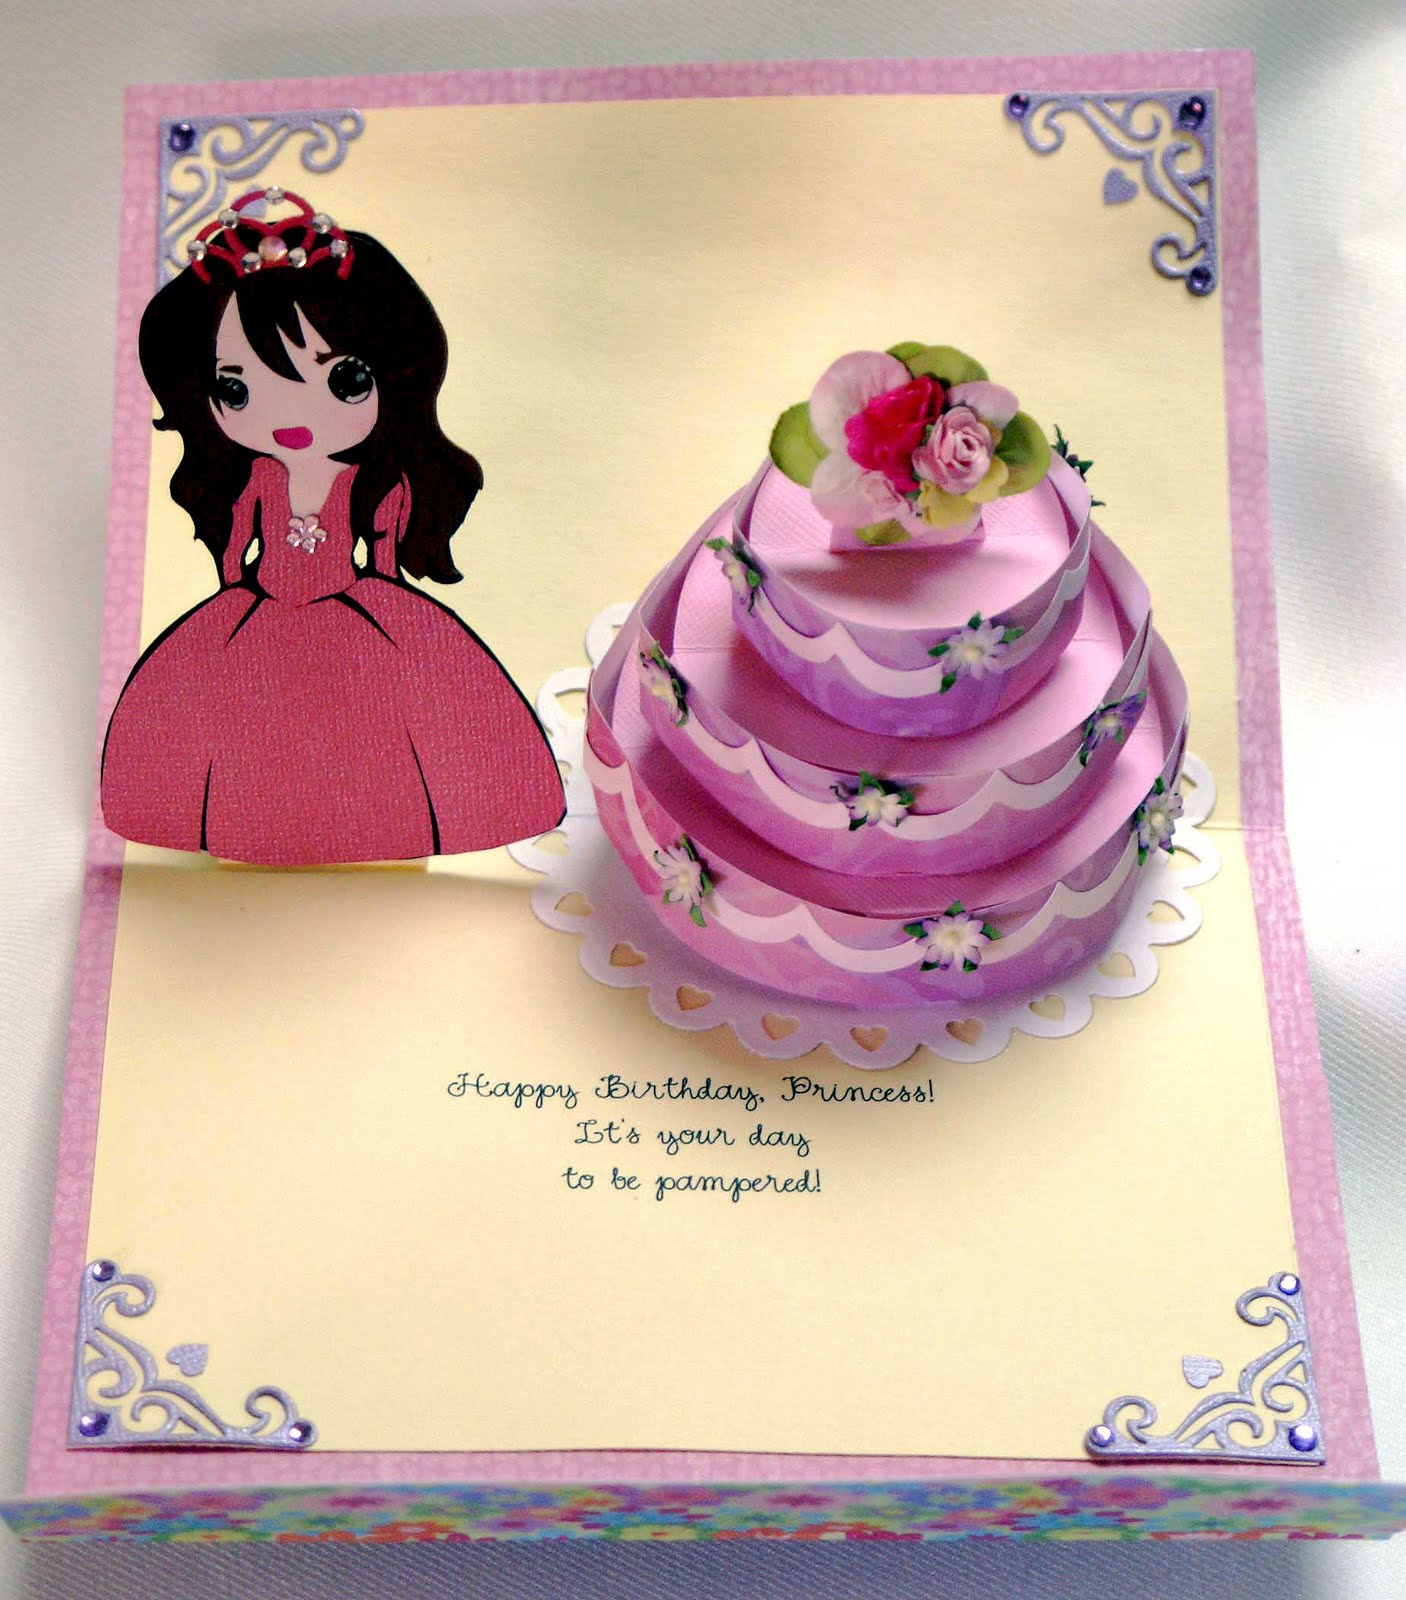 Heres The Second Pop Up Cake Card I Made This One For Dds Birthday She Celebrated Her 25th Year But To Dh And Myself Is Always